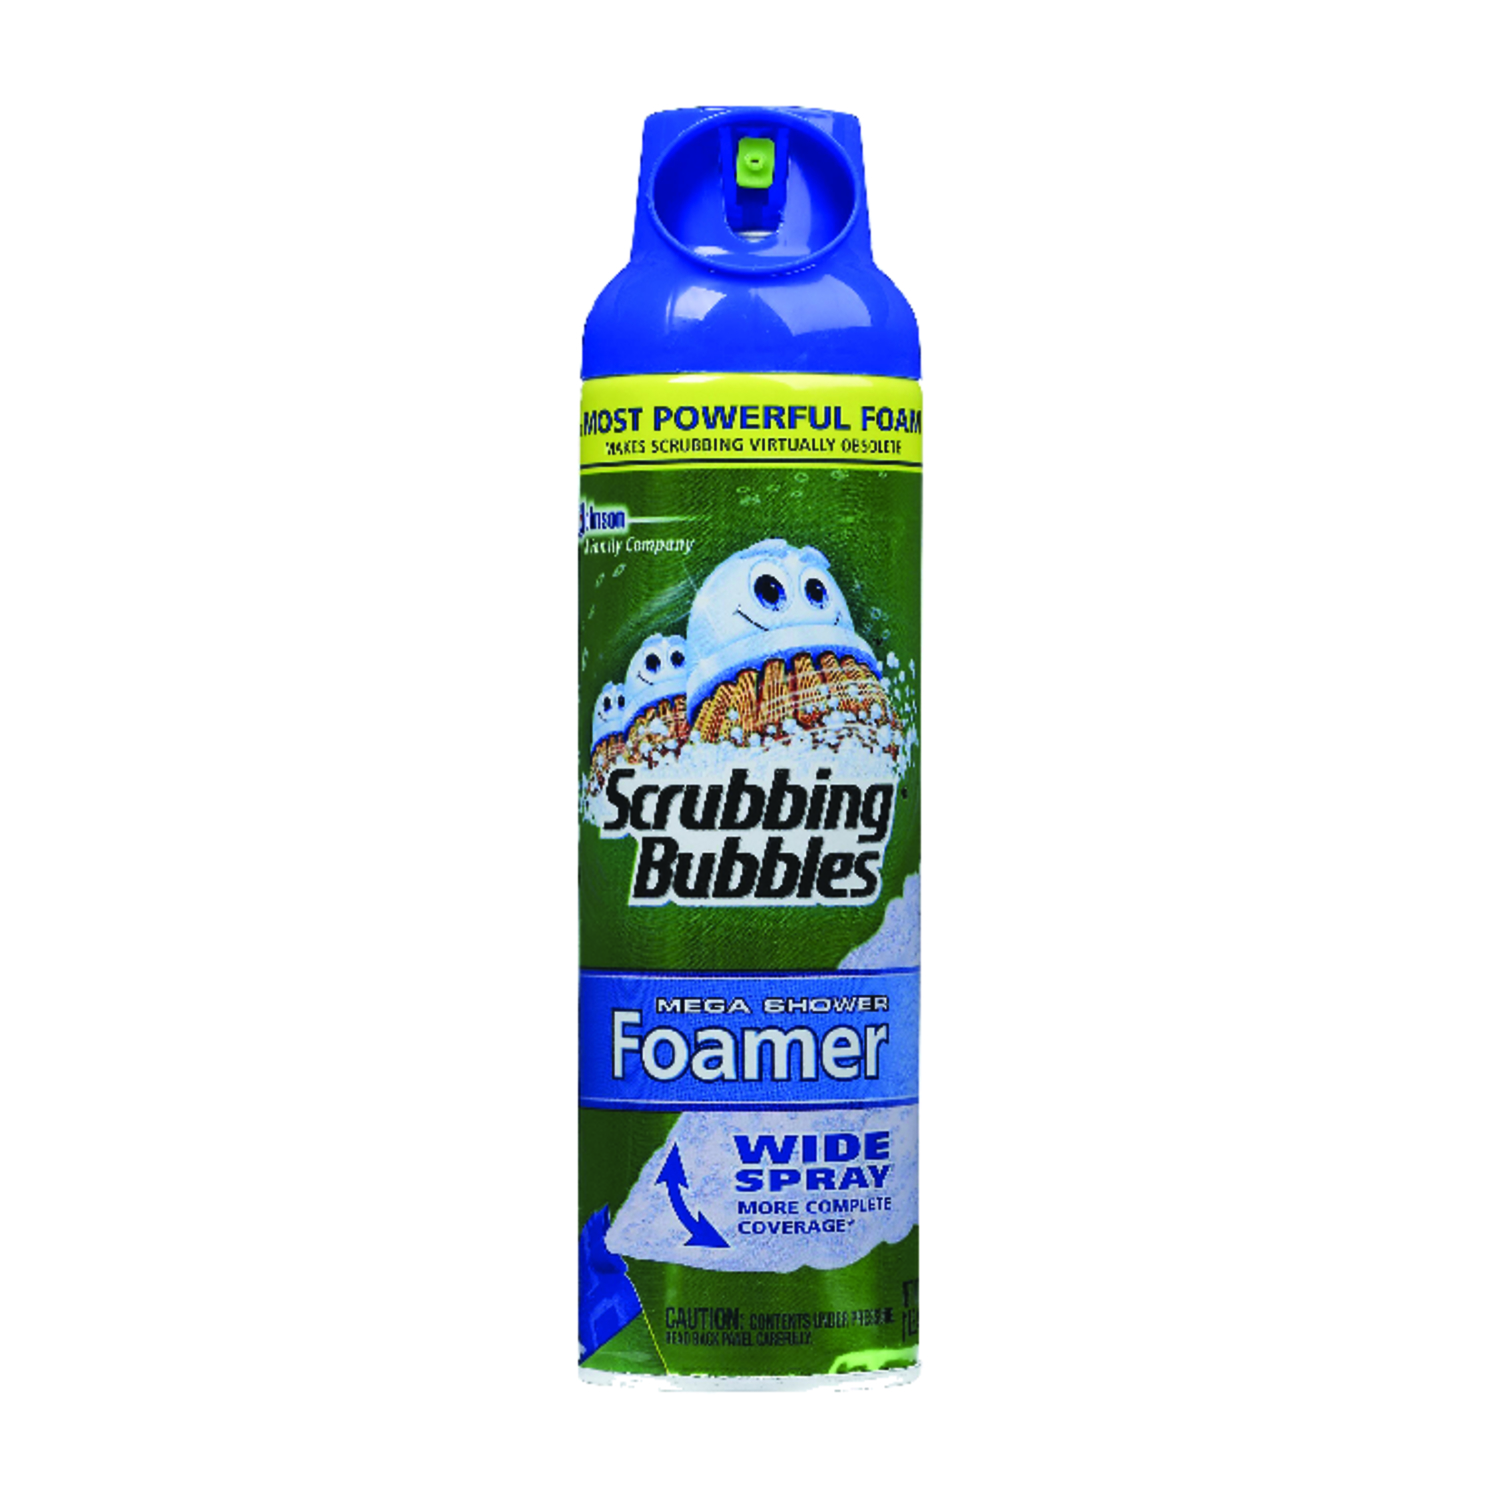 Scrubbing Bubbles  Mega Shower Foamer  No Scent Bathroom Cleaner  20 oz. Foam